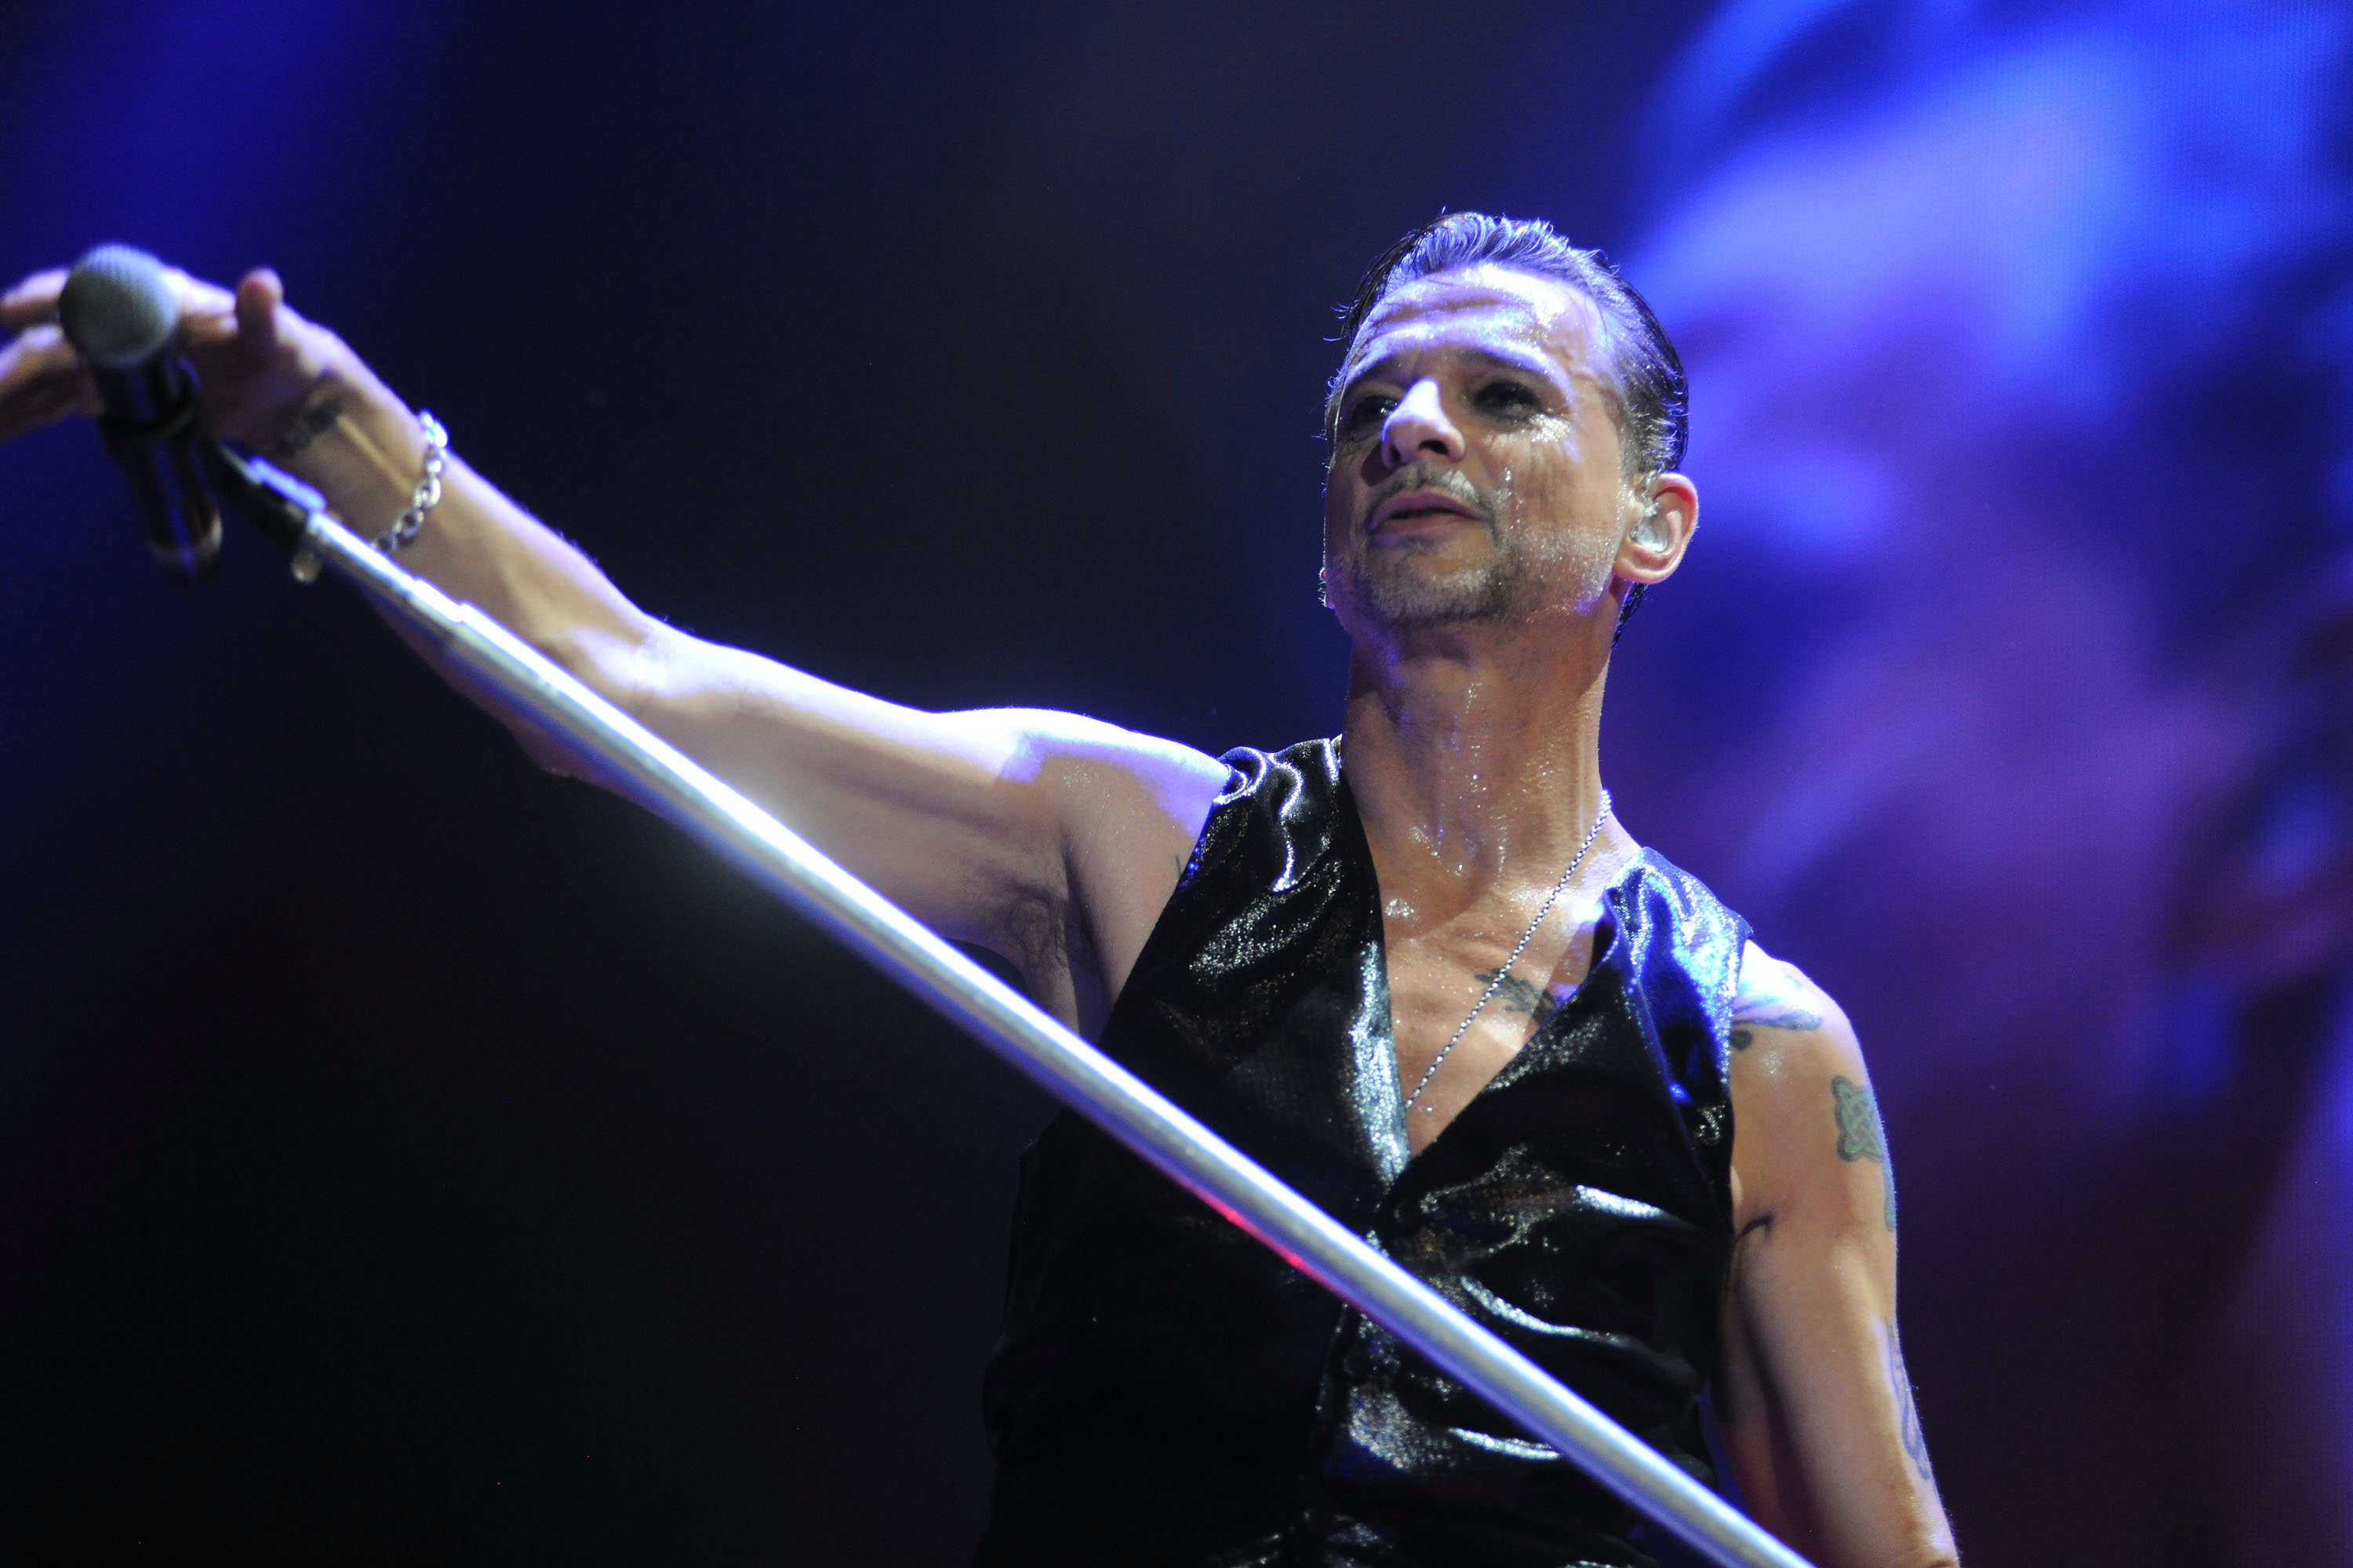 BOLOGNA, ITALY - FEBRUARY 22:  Dave Gahan lead the Depeche Mode in concert at Unipol Arena on February 22, 2014 in Bologna, I